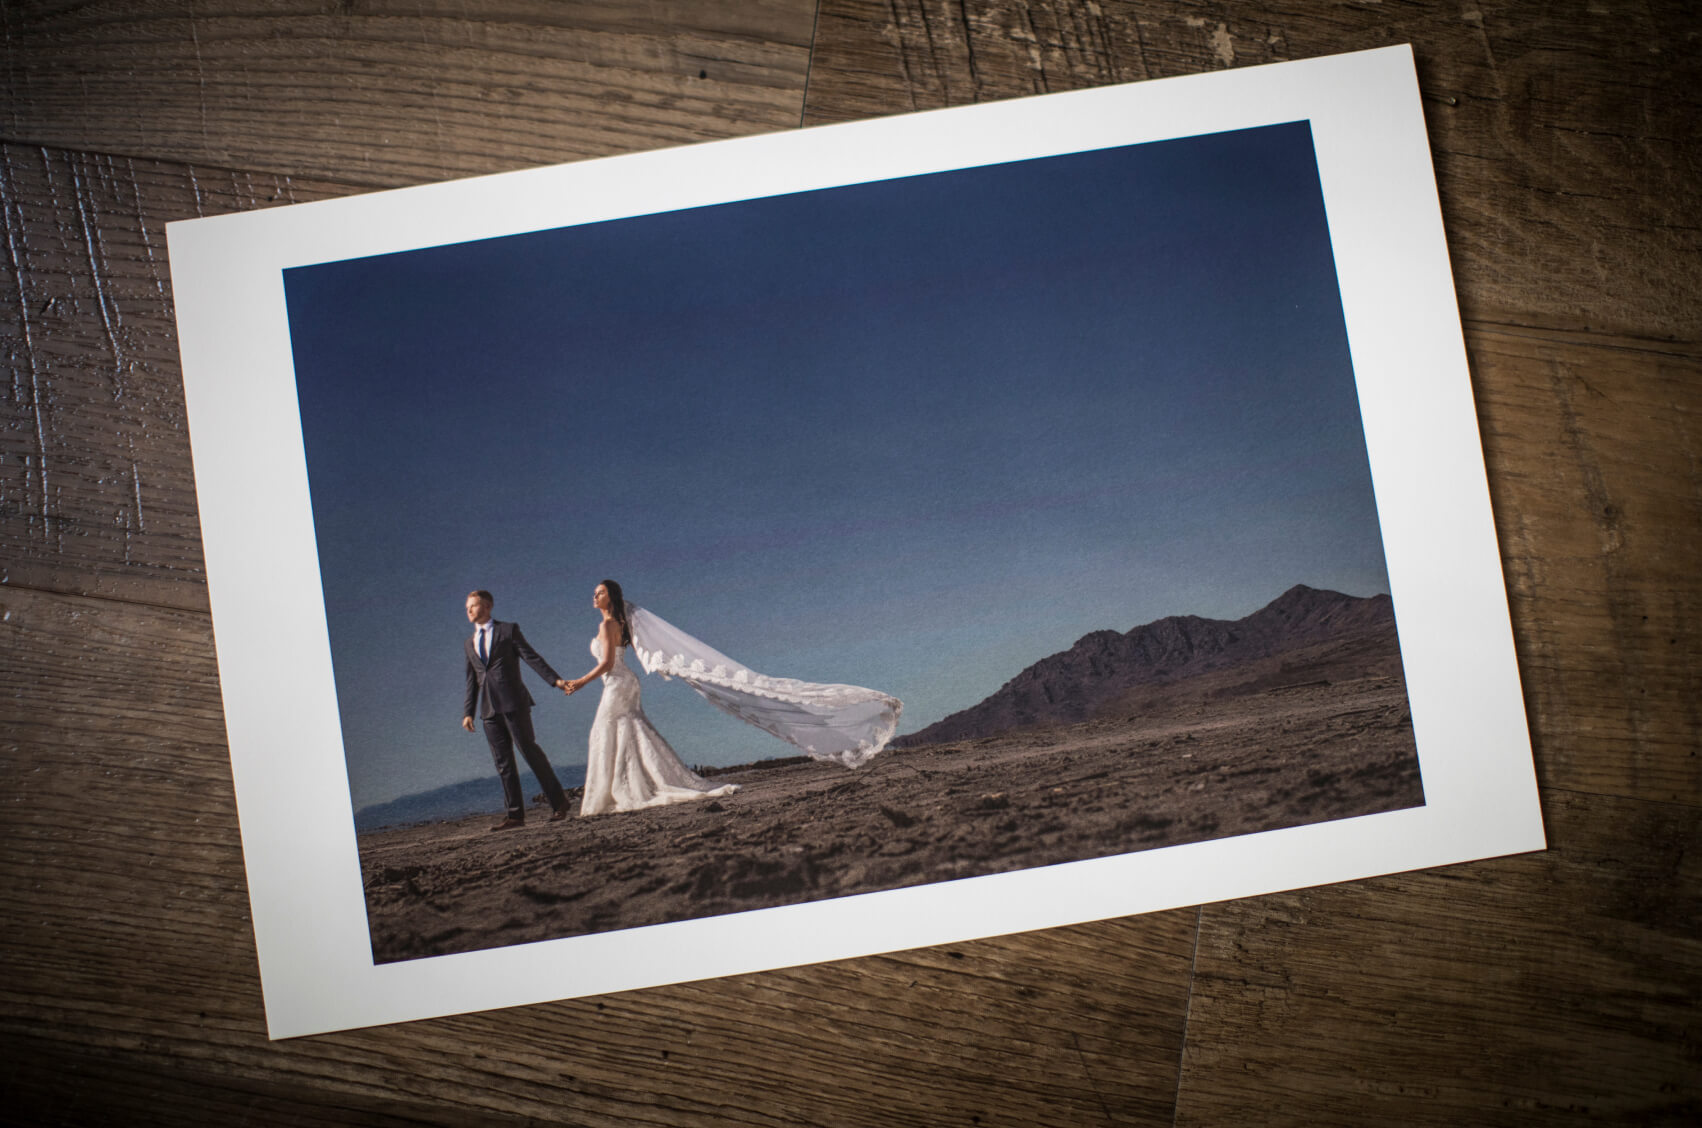 Final image printed on Canon paper